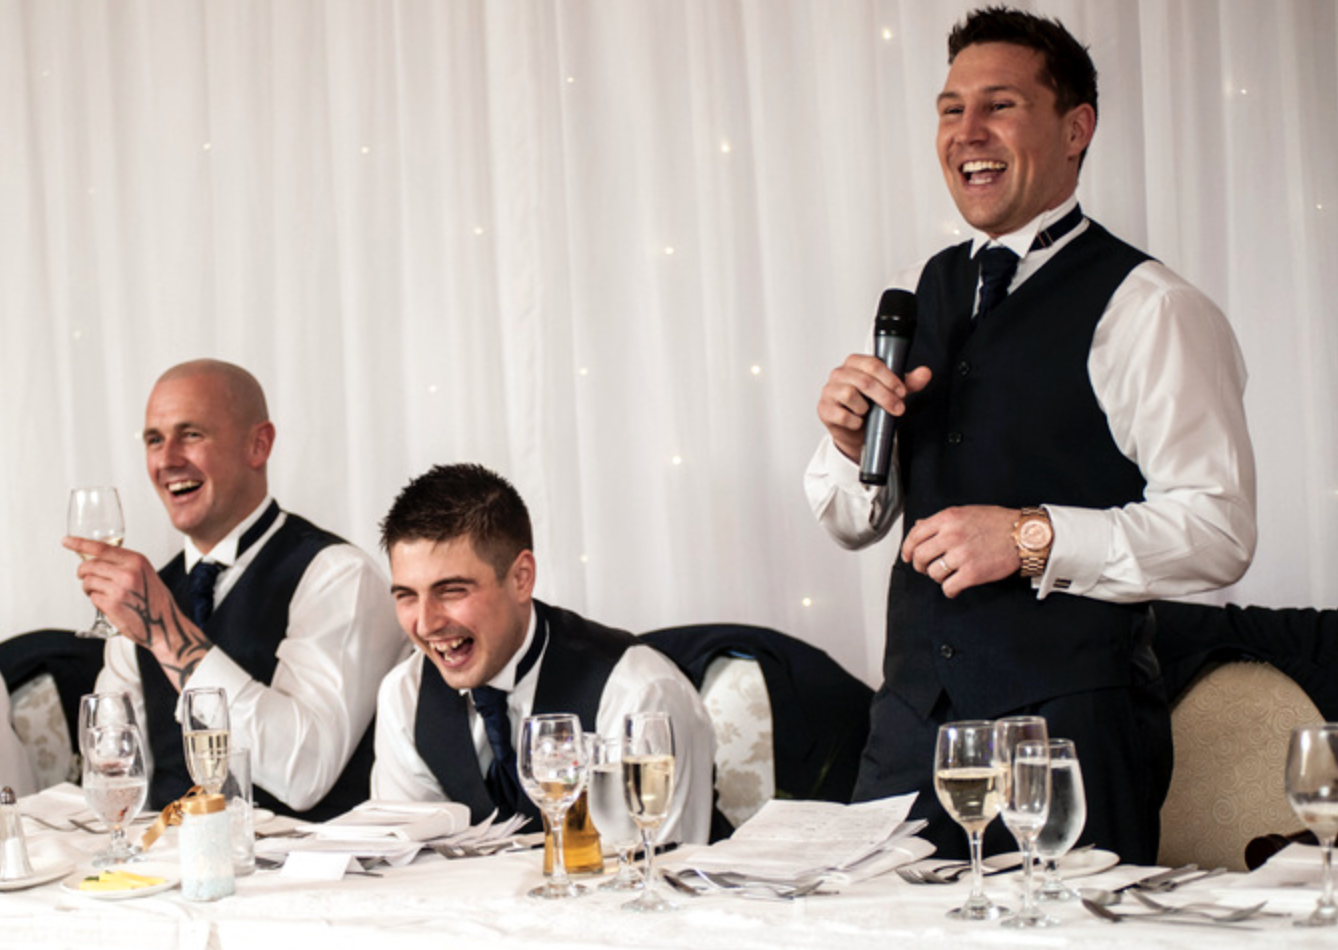 Best man speech length